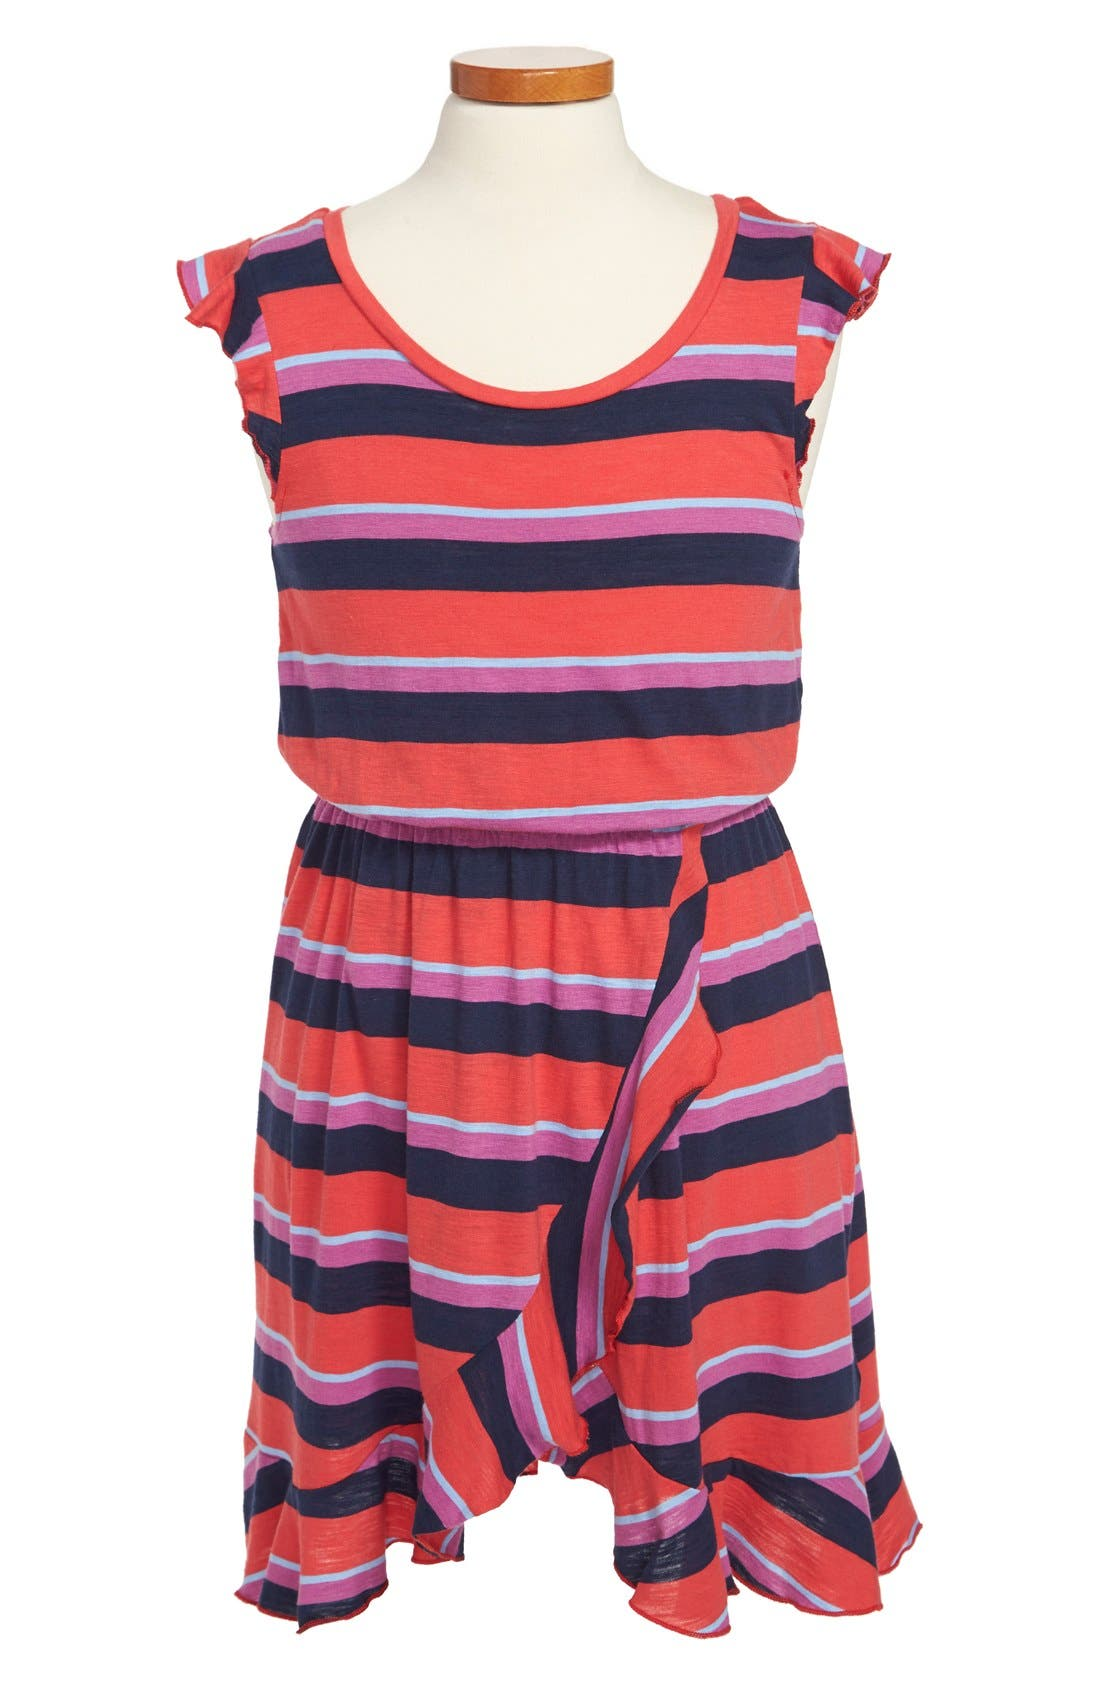 Alternate Image 1 Selected - Splendid 'Wow' Stripe Flutter Sleeve Dress (Big Girls)